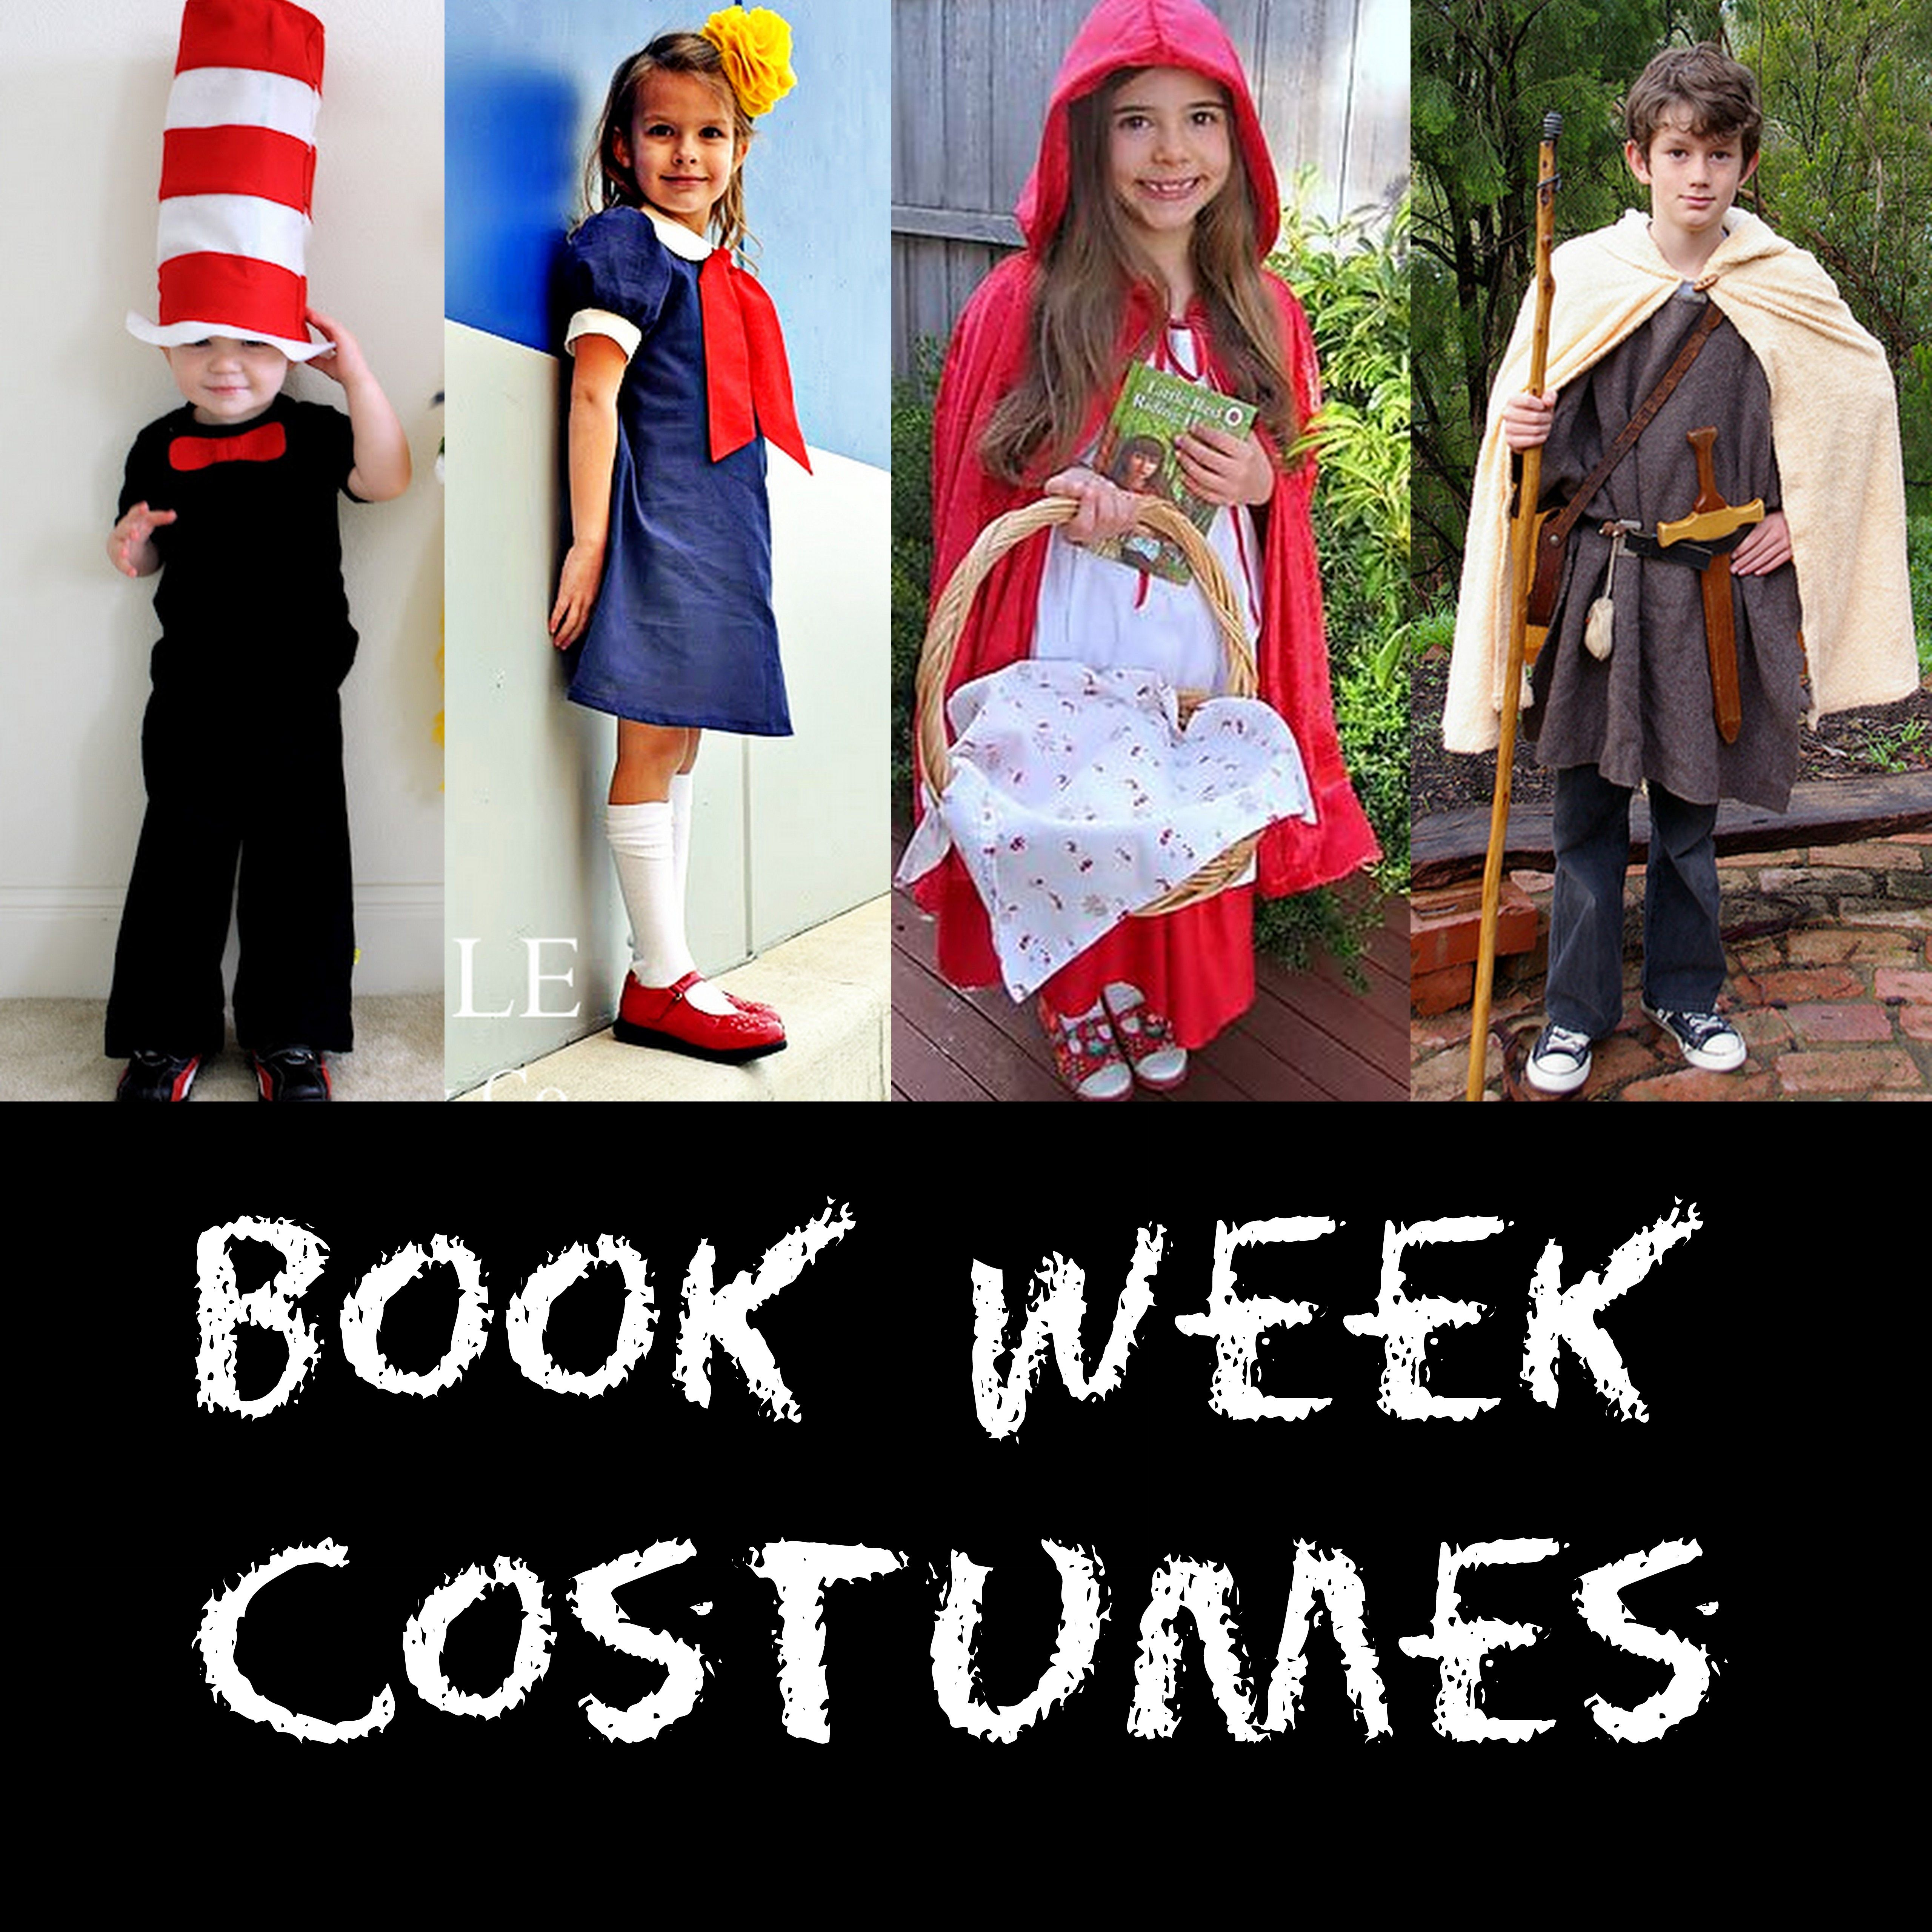 character costumes dress week homemade costume characters storybook halloween books teacher diy story children teachers potter harry clip cartoon check